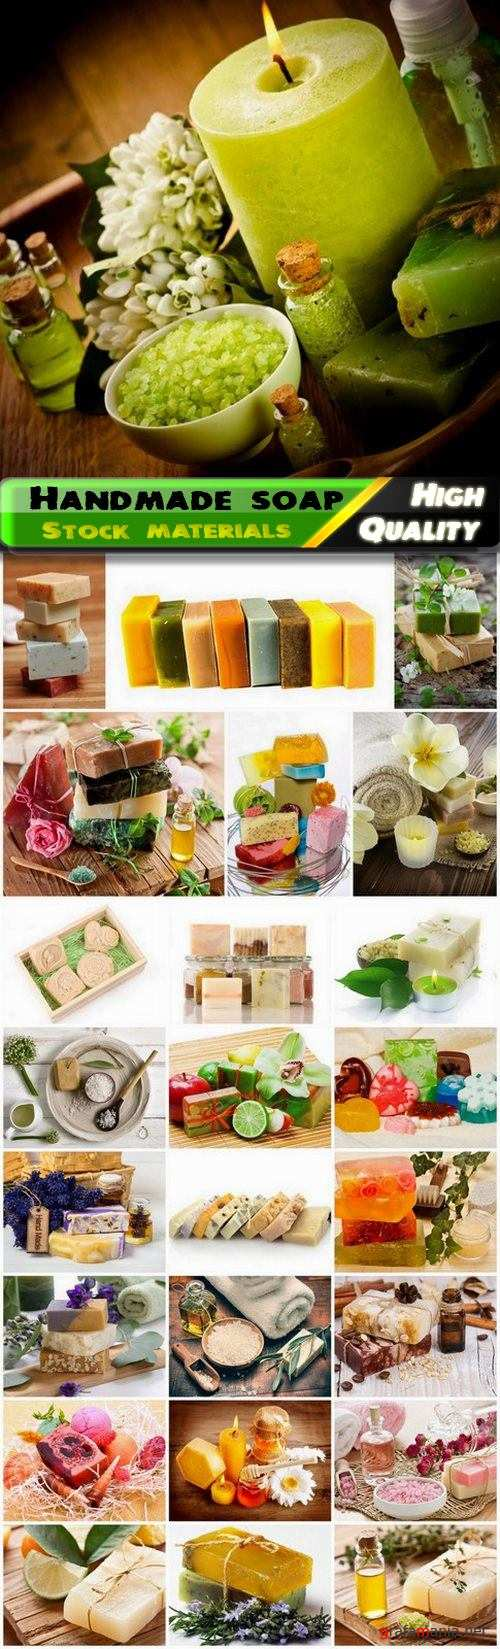 Spa products and creative colored handmade soap - 25 HQ Jpg